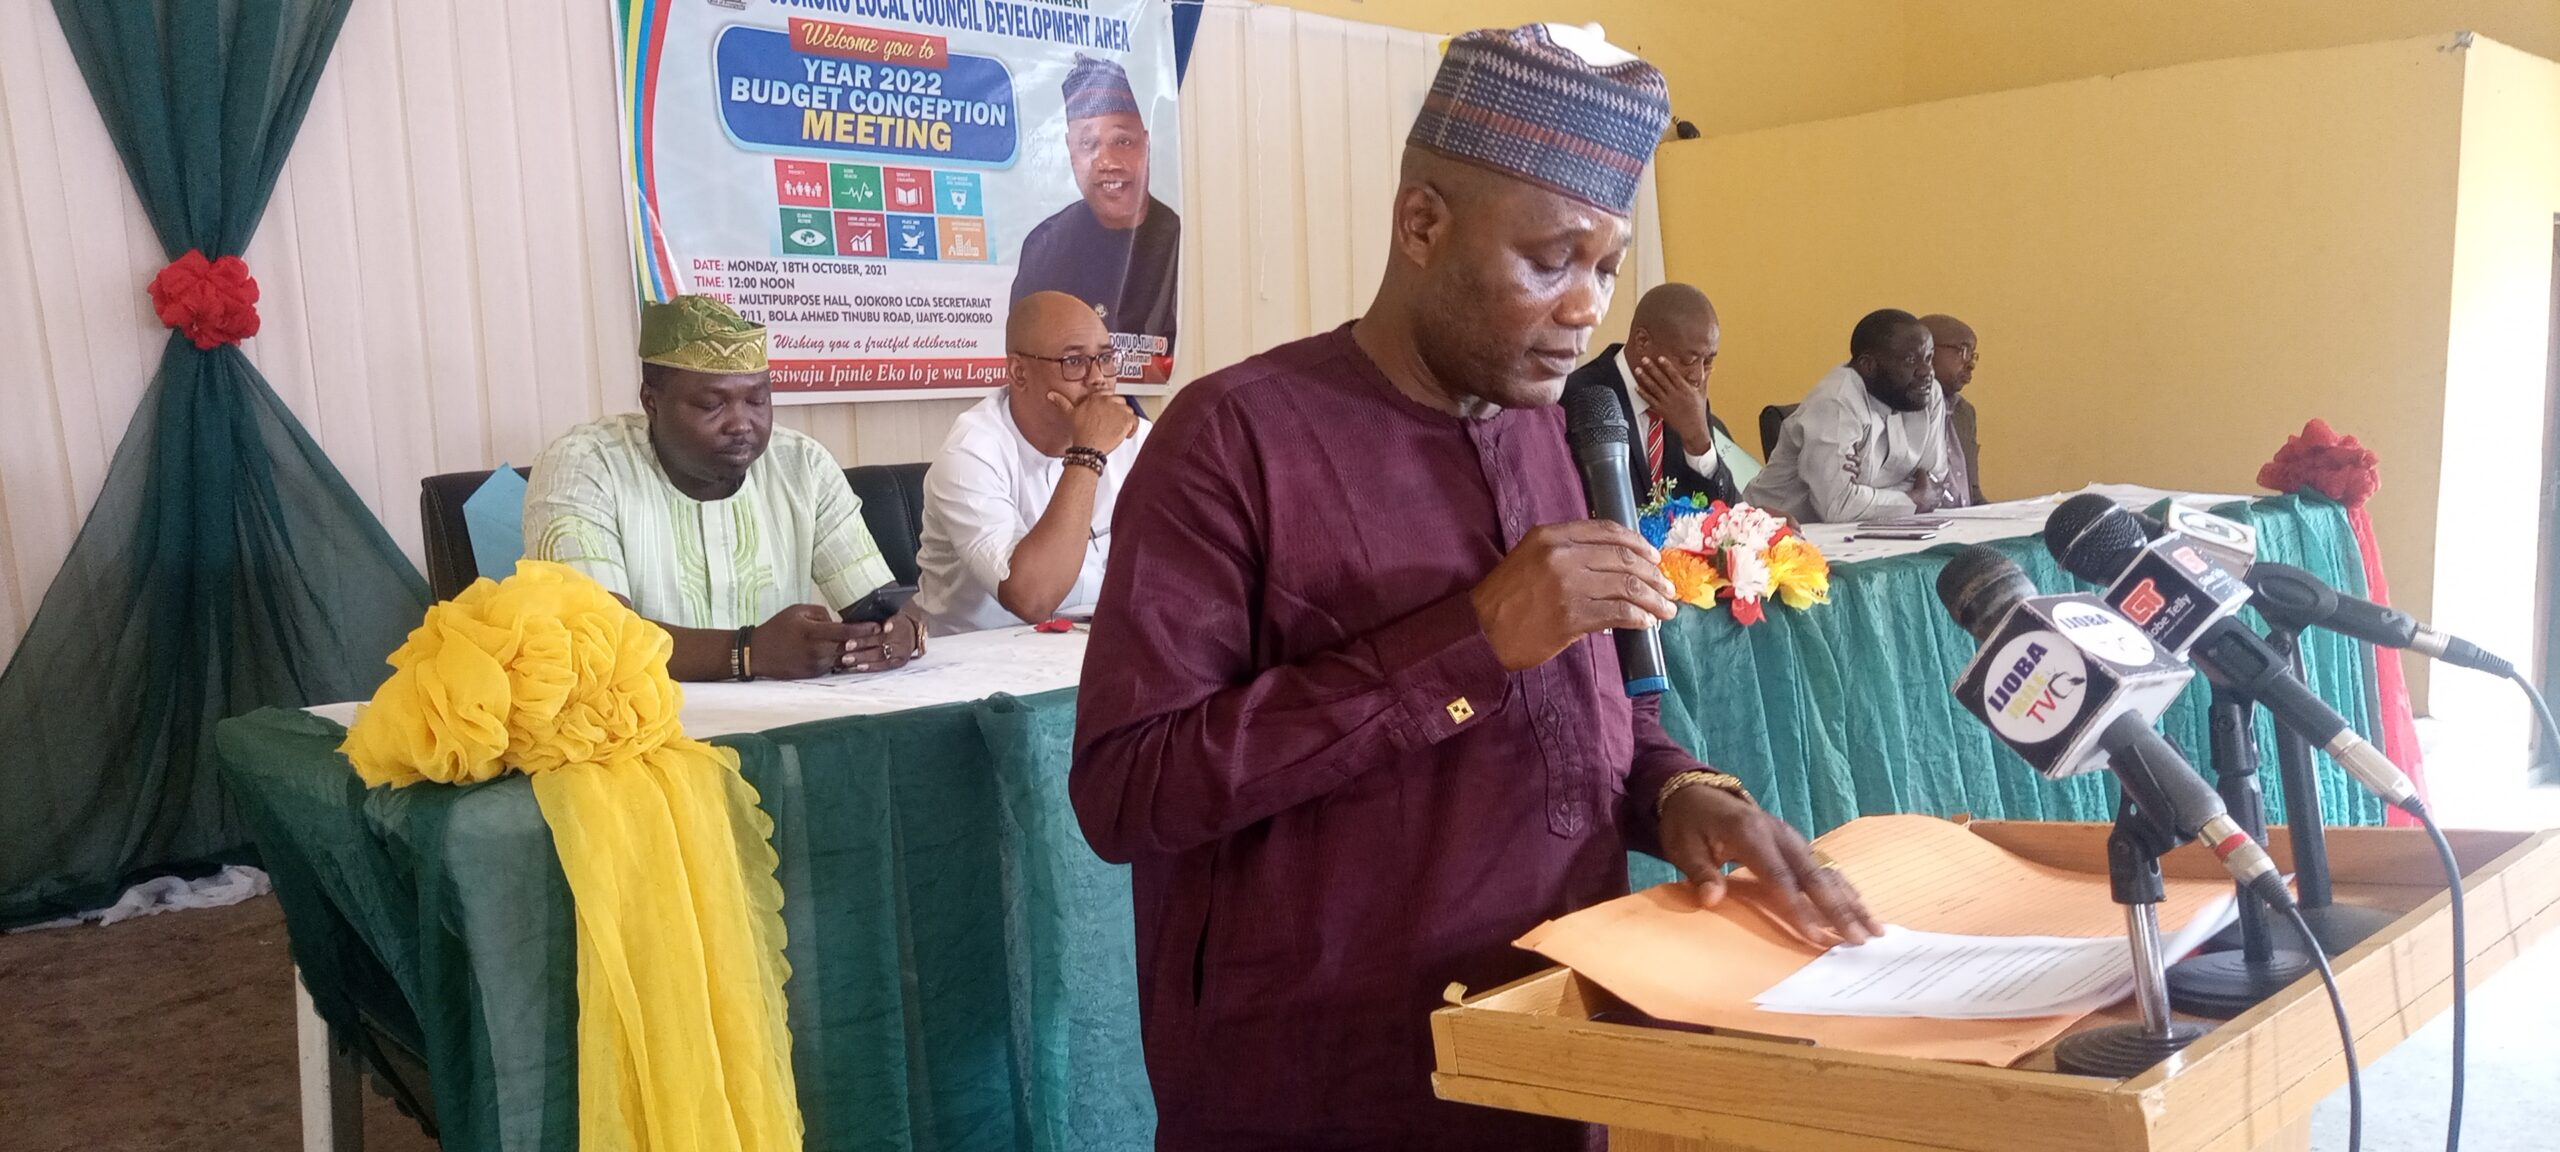 Photo of Budget 2022 Conception Meeting: We are set to having an achievable, realistic budget – HID Tijani